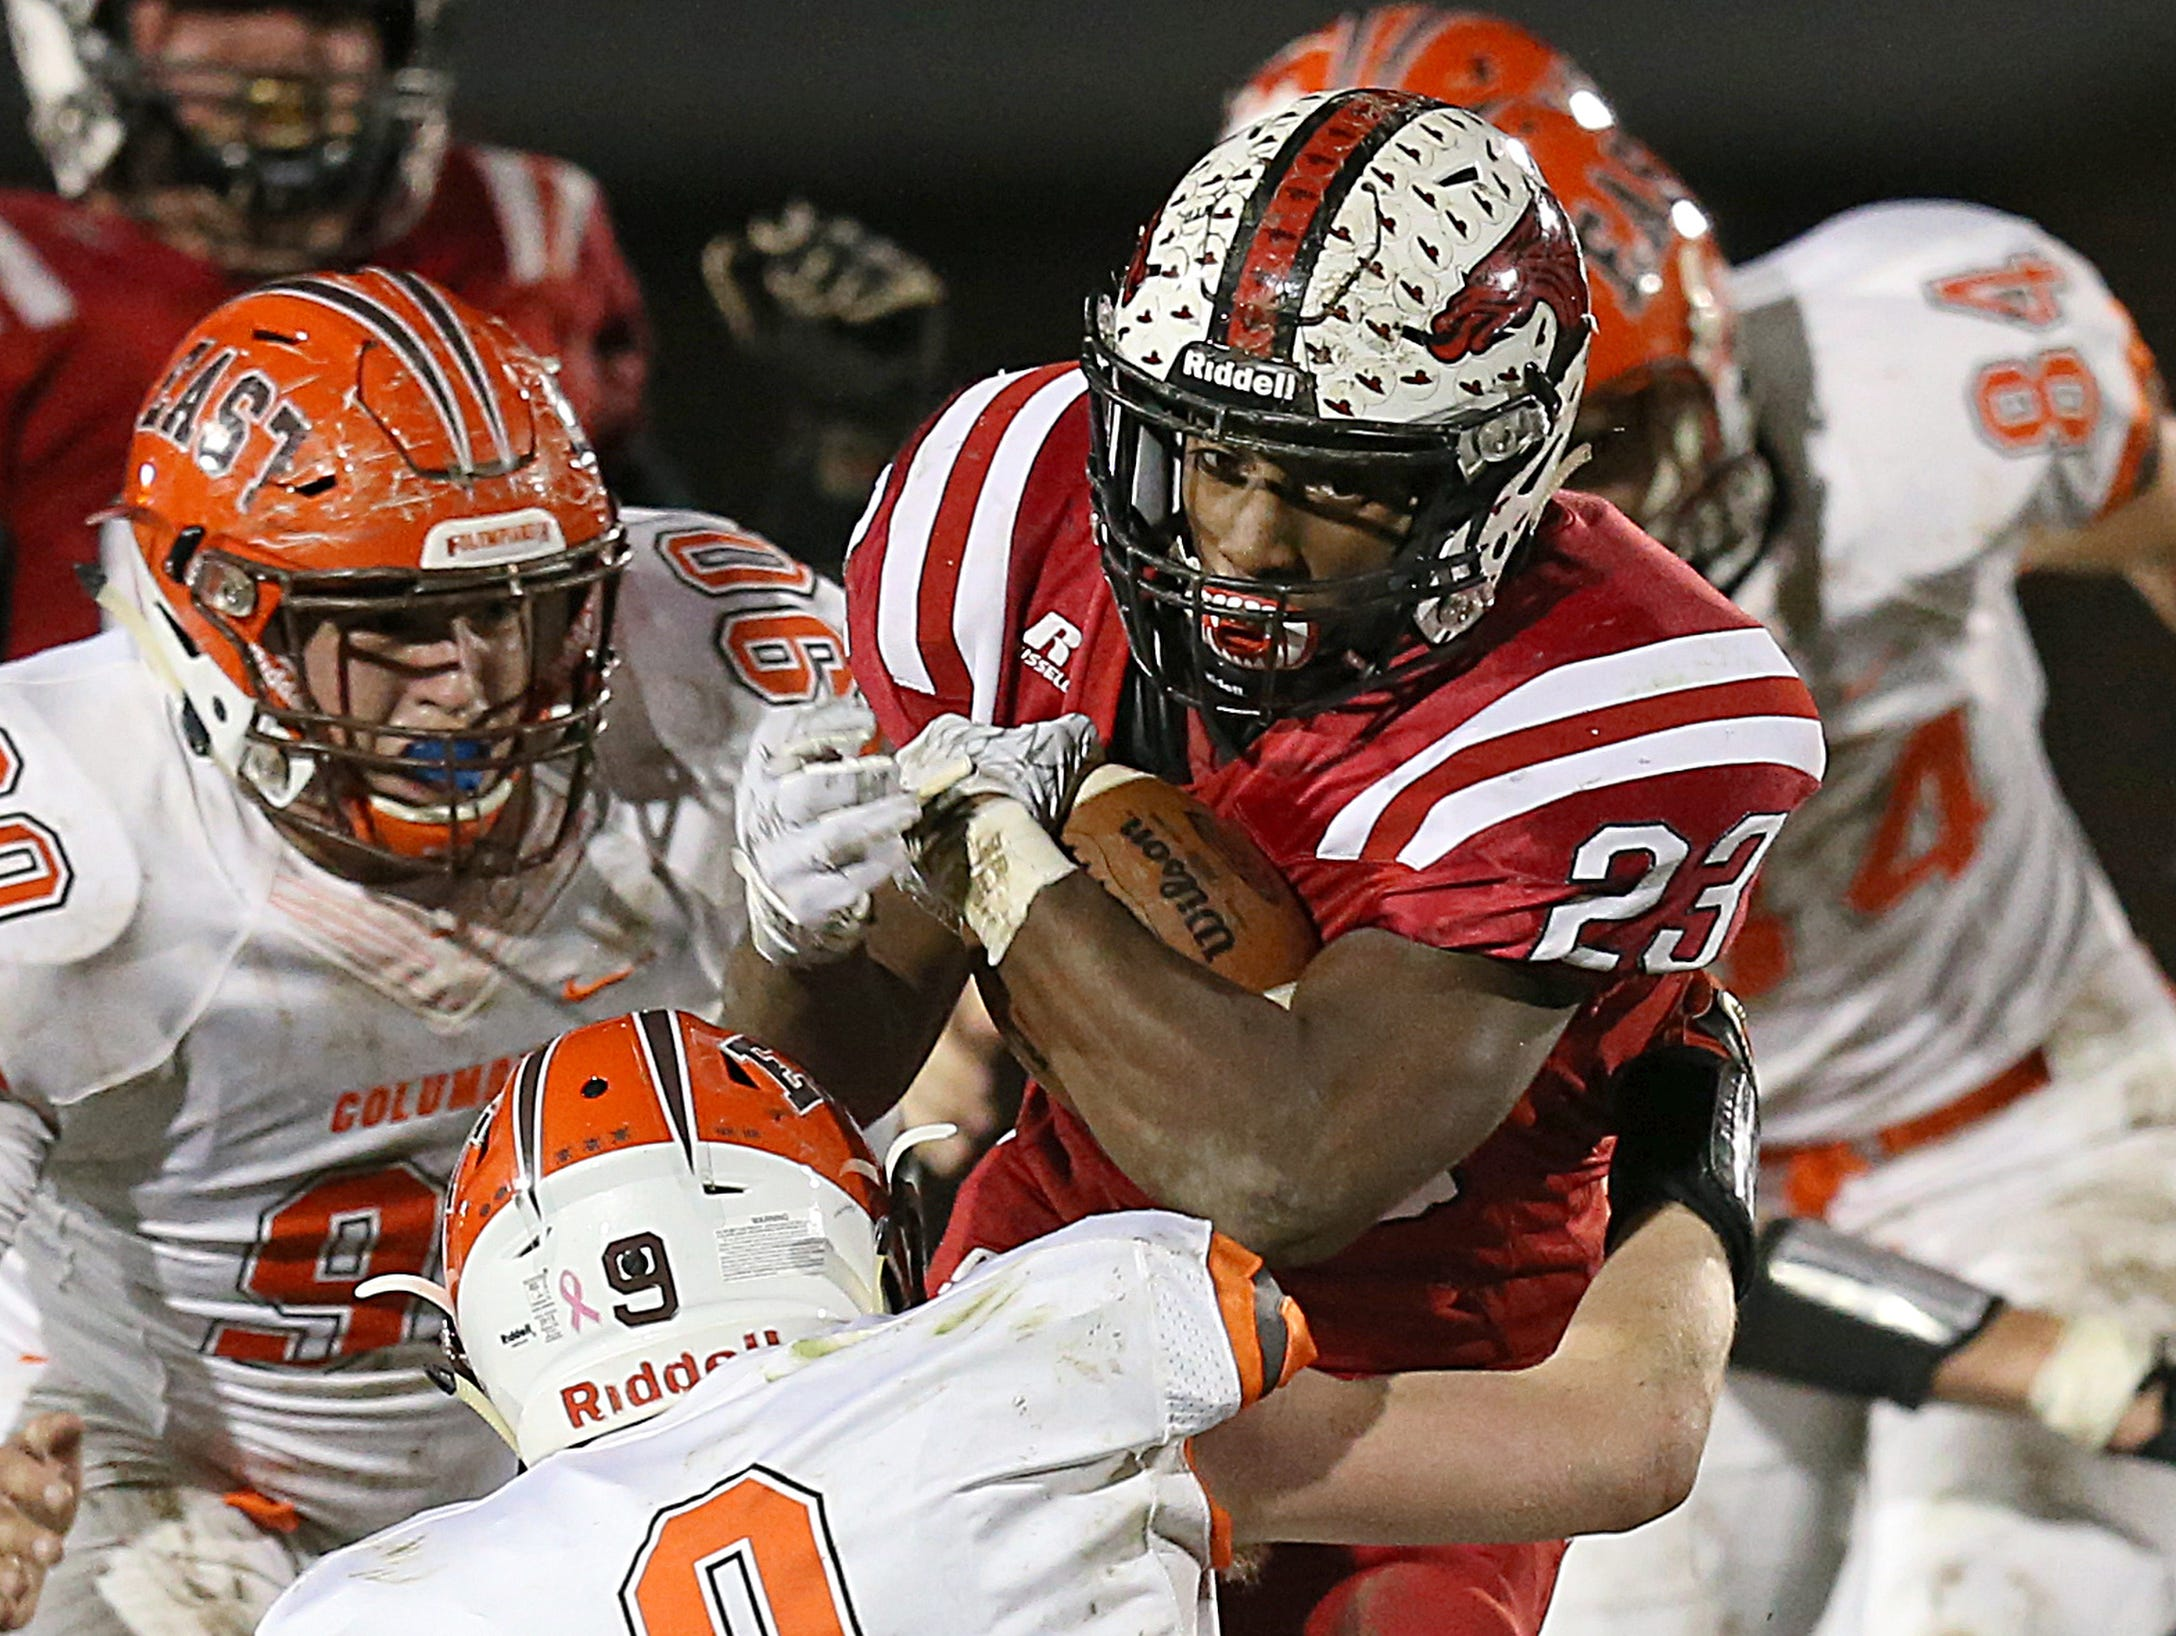 New Palestine Dragons DuRon Ford (23) carries the ball through a cluster of Columbus East defenders during first half action between New Palestine and Columbus East in New Palestine, Ind., Friday, October 21, 2016.Columbus East led, 20-7 at the end of the first half.